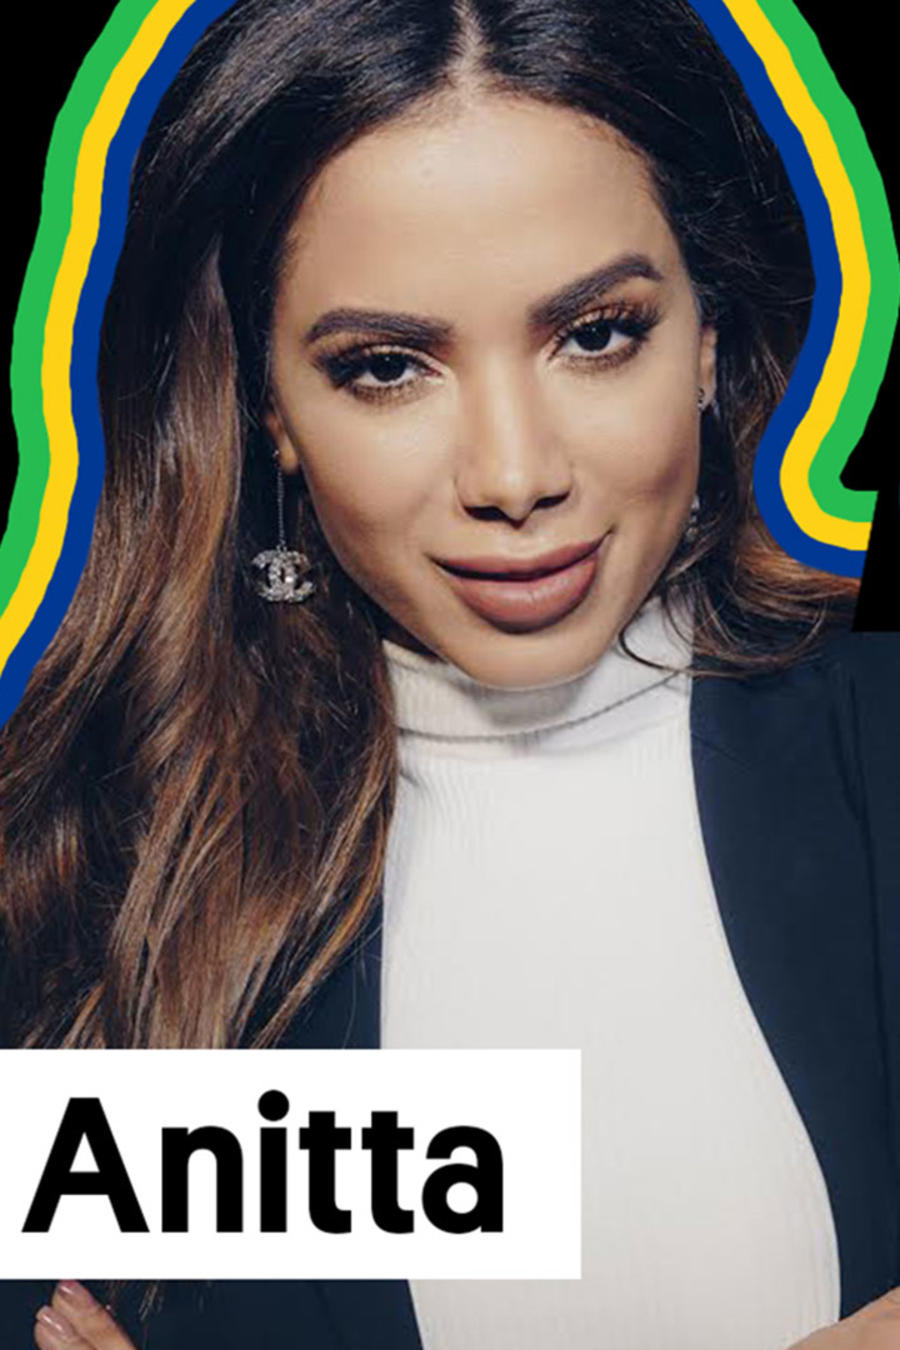 Anitta in Growing up Latino